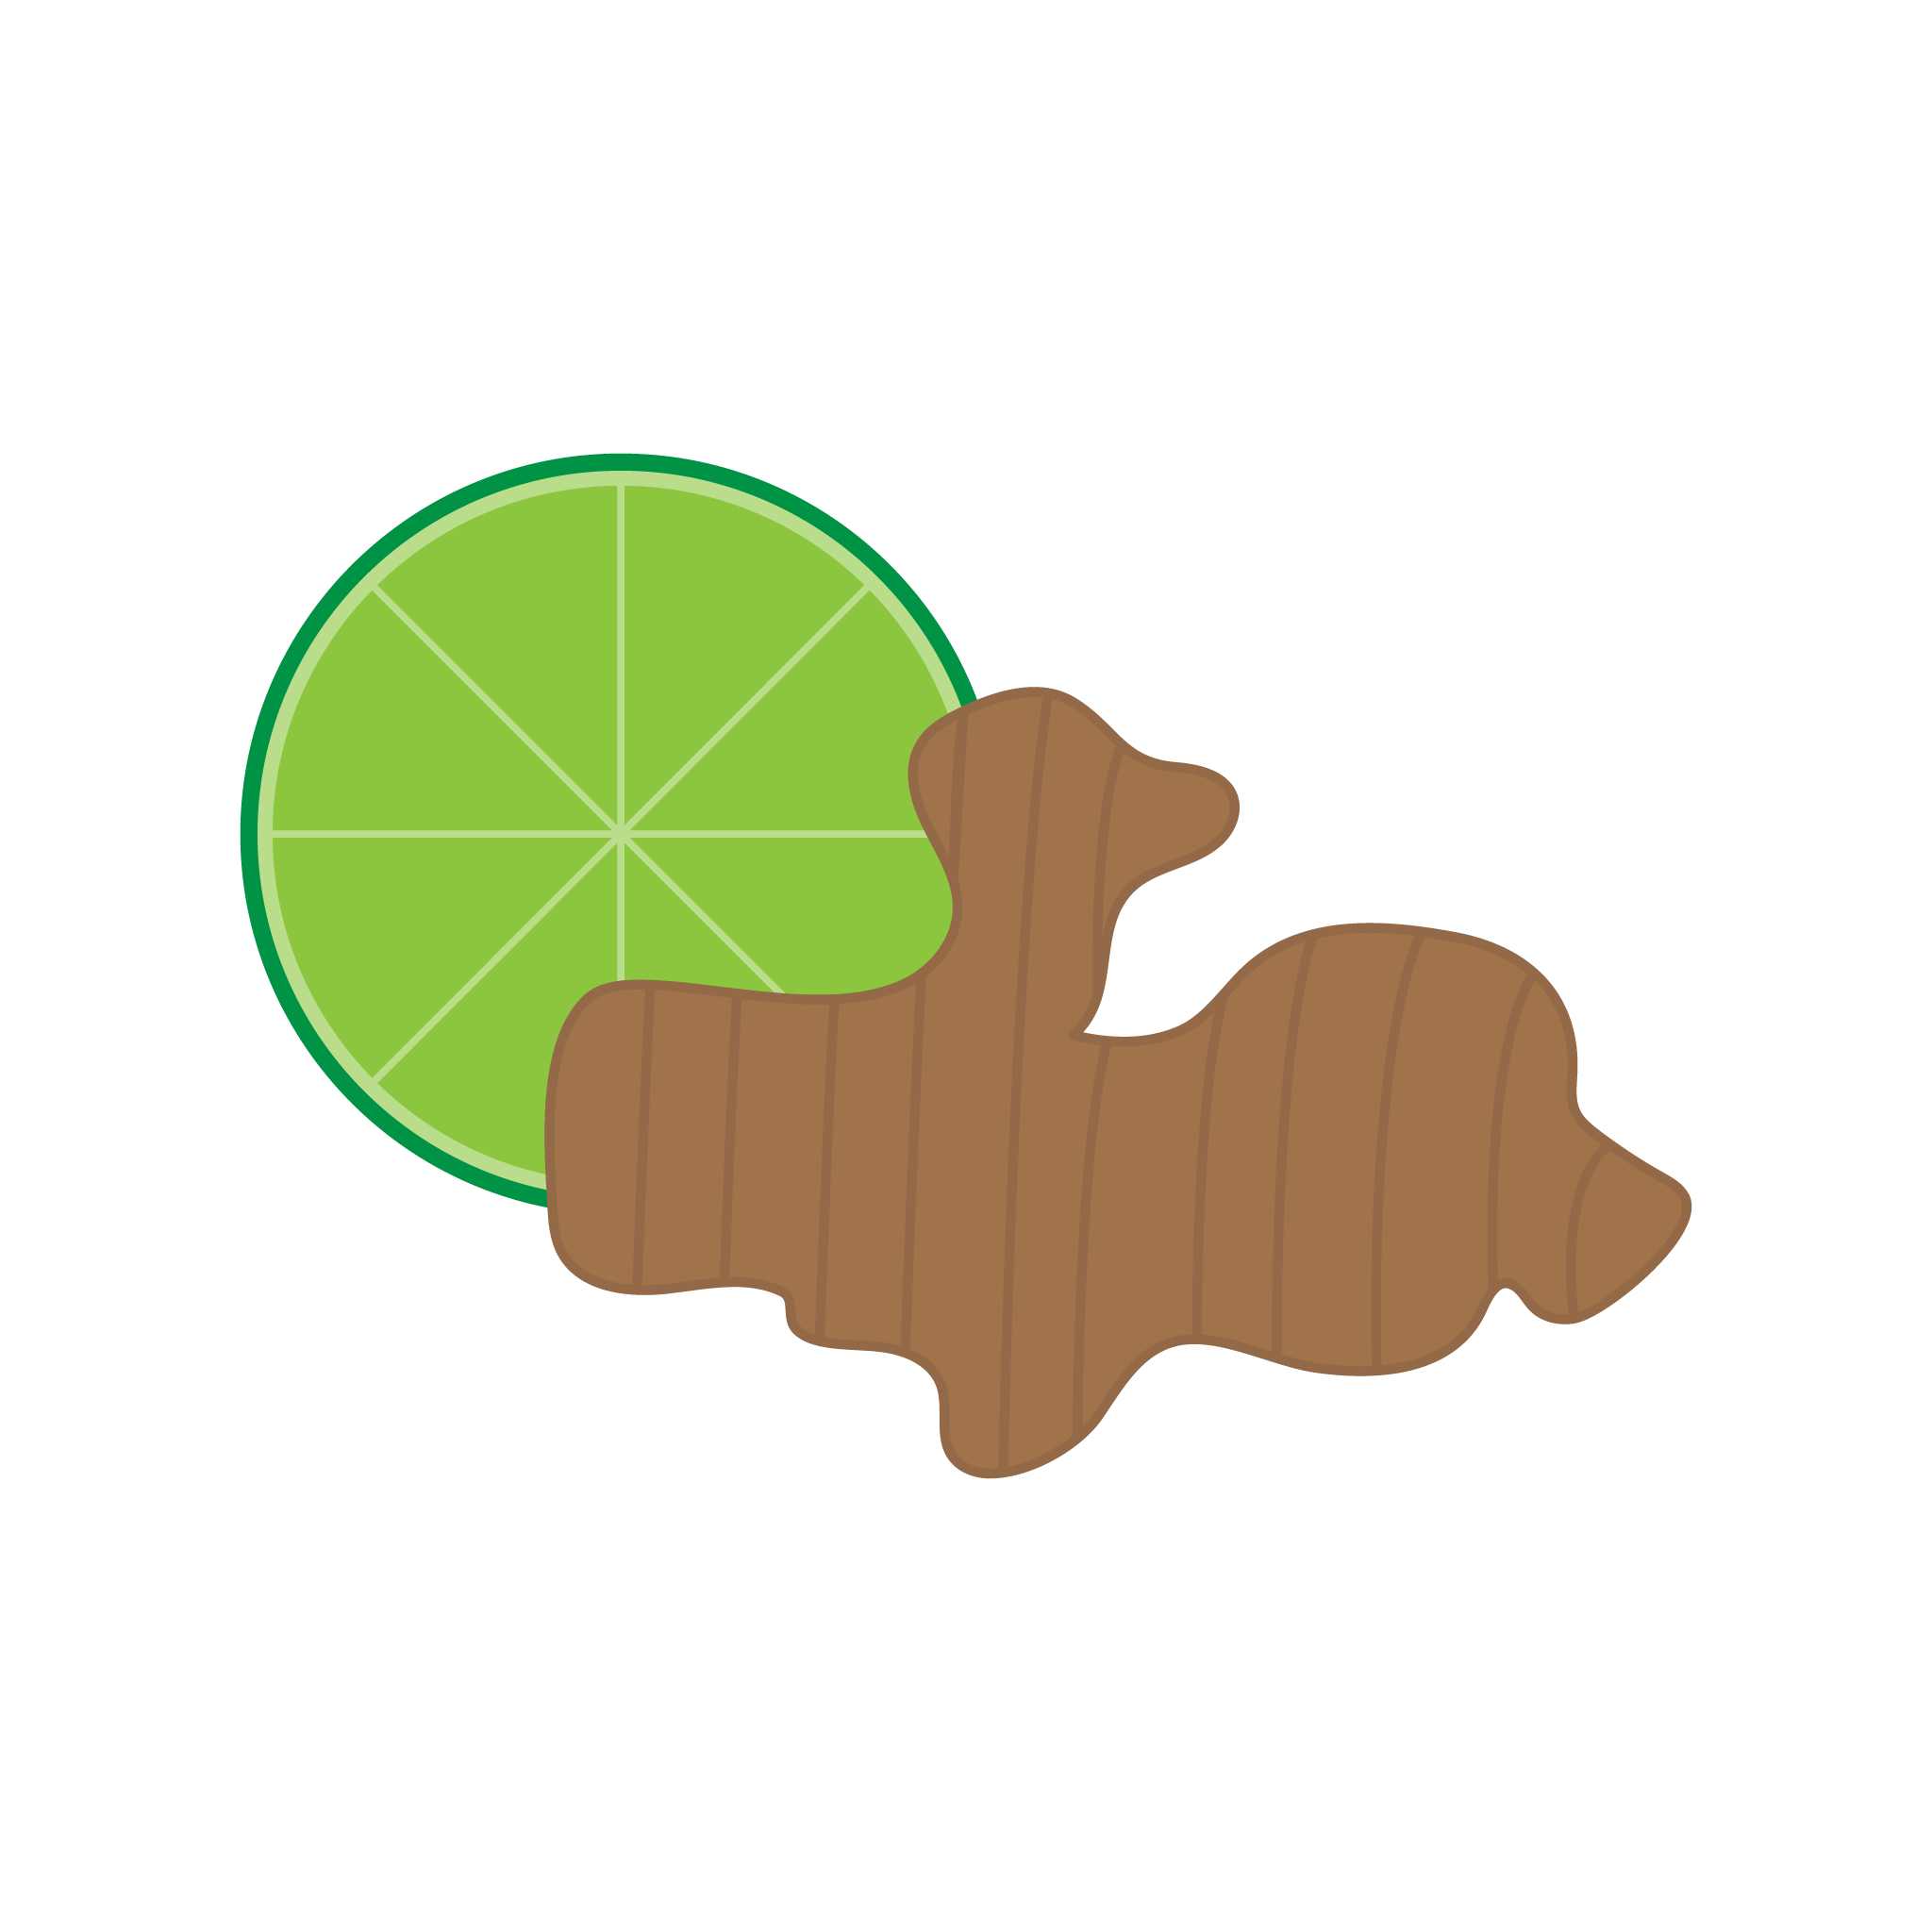 Ginger Lime flavor graphic for INFUSION drink manufactured by Bubble Sip, LLC.